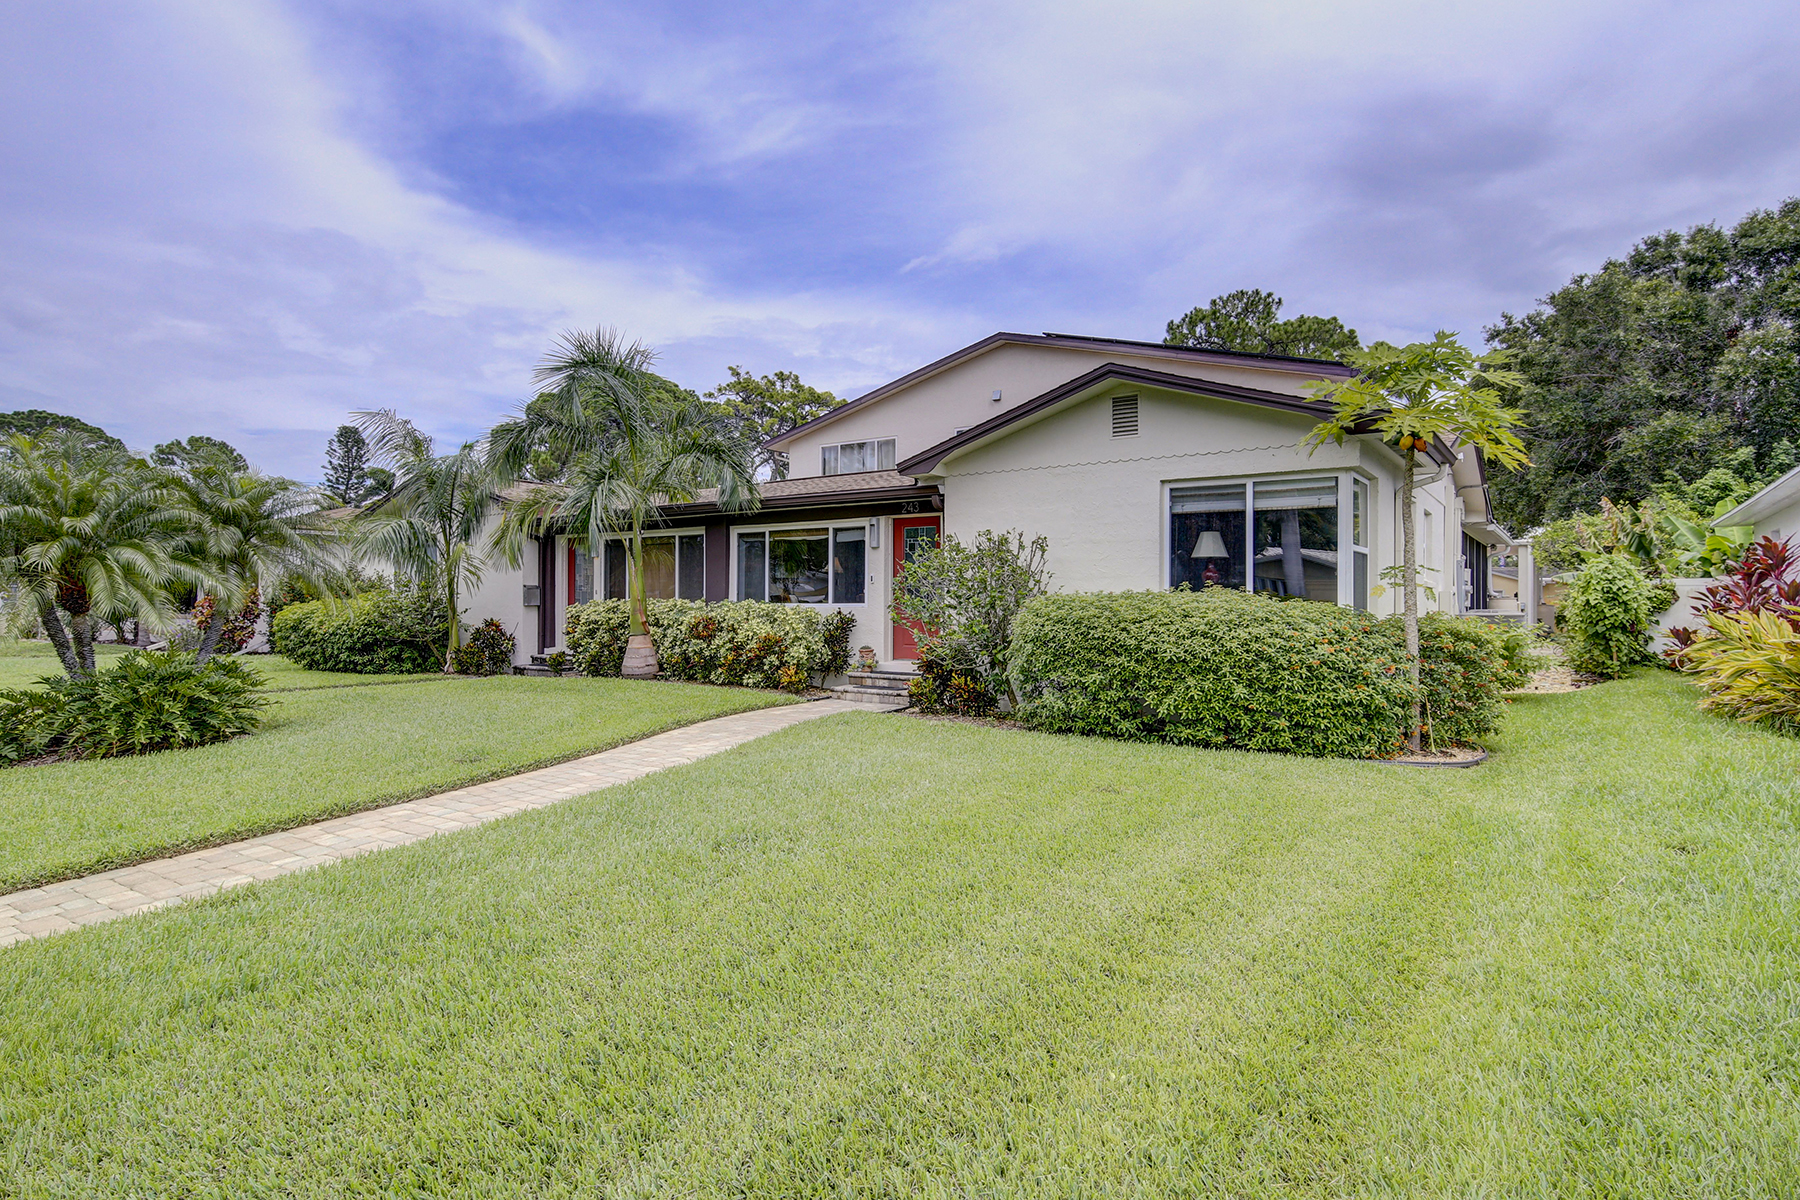 Single Family Homes for Sale at 243 Mateo Way Ne St. Petersburg, Florida 33704 United States